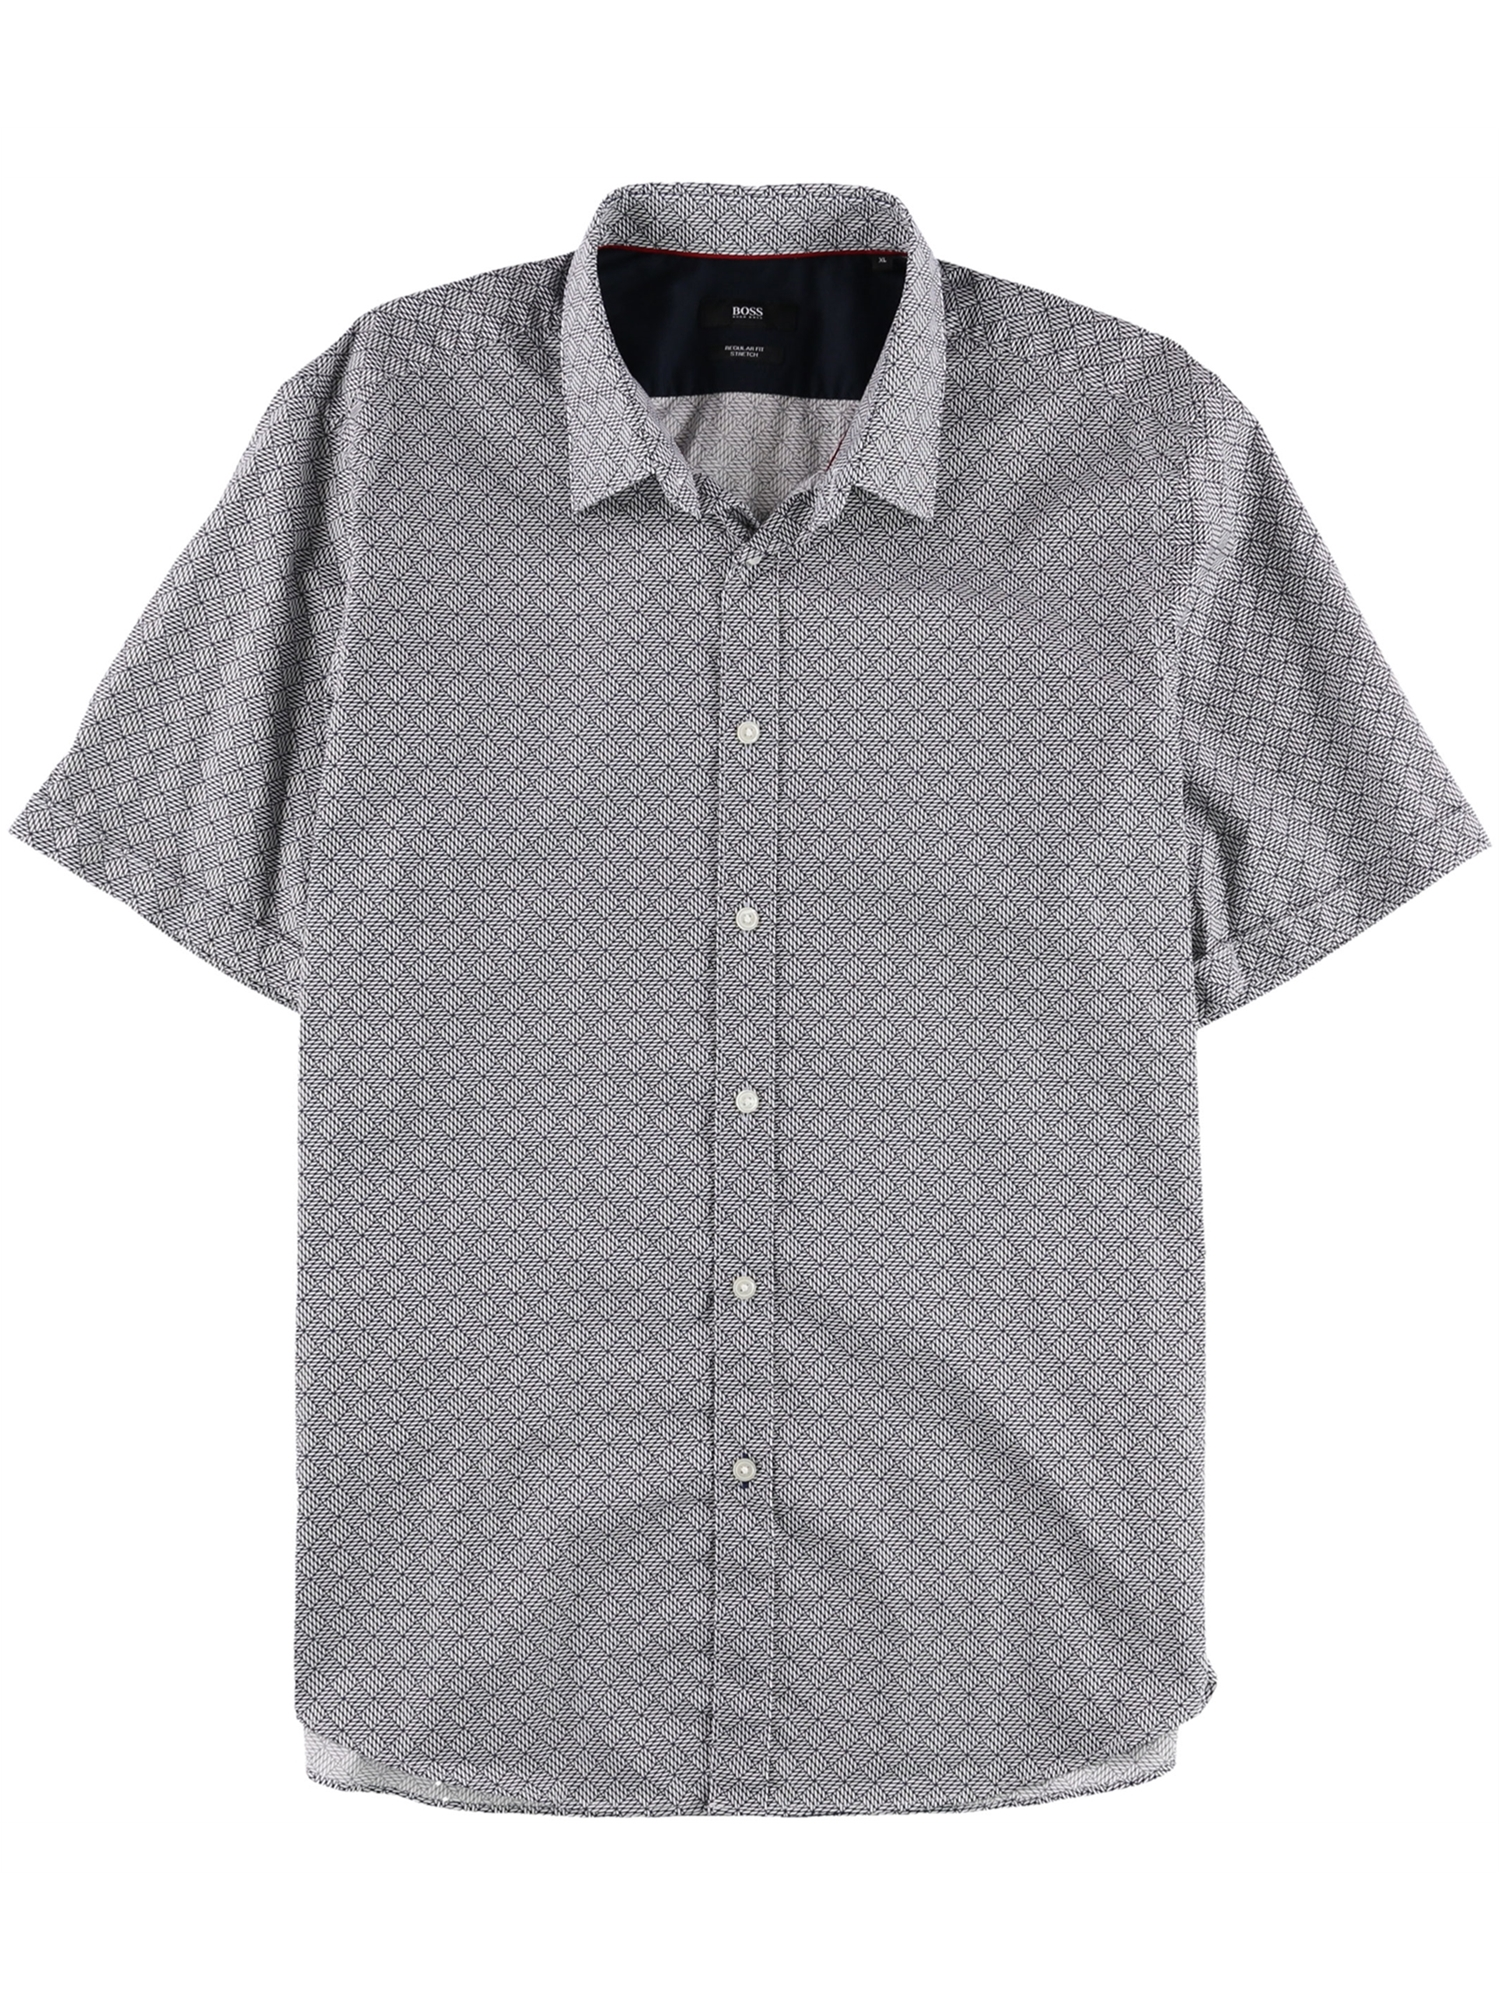 3974b23c9828 HUGO BOSS - Hugo Boss Mens Geometric Button Up Shirt 410 XL ...